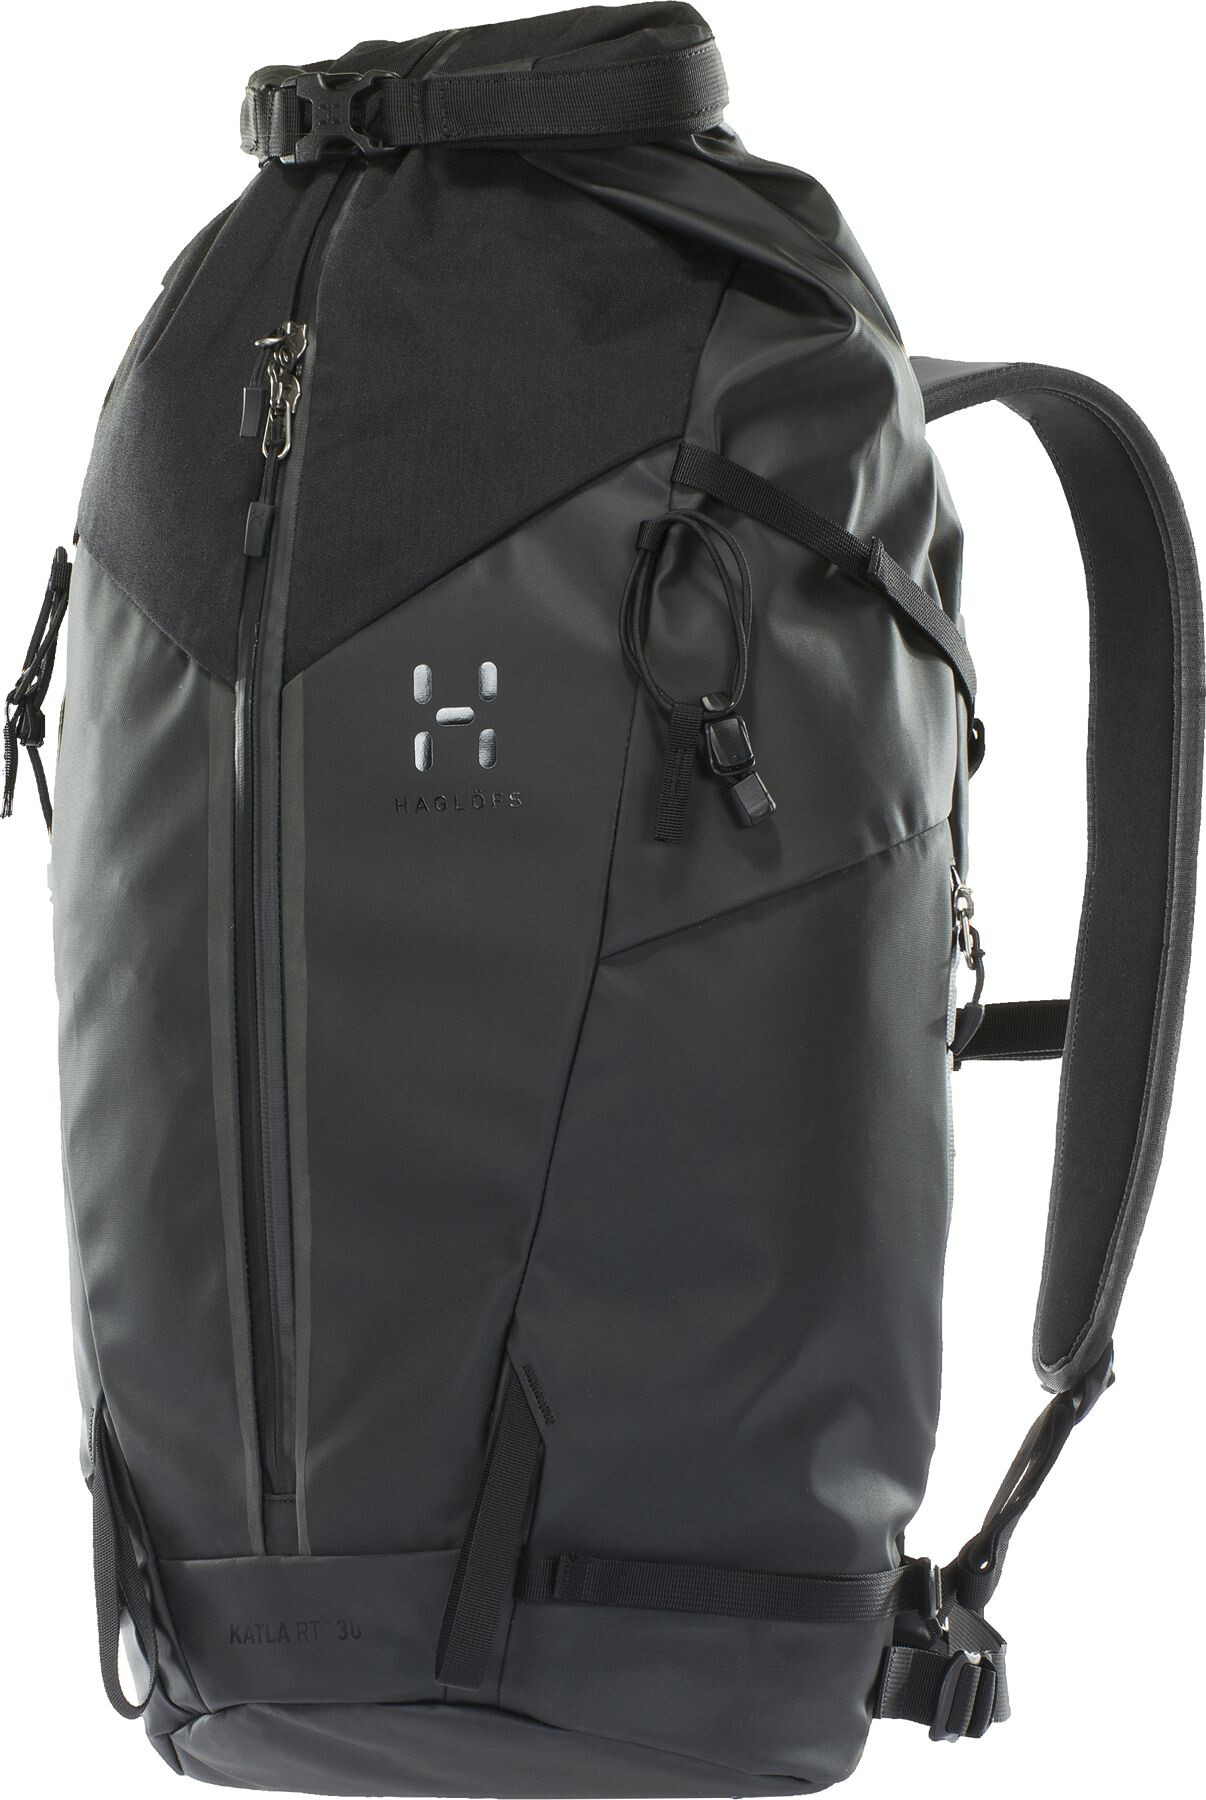 Haglöfs Katla Roll-Top 30 Rygsæk, true black (2019) | Travel bags